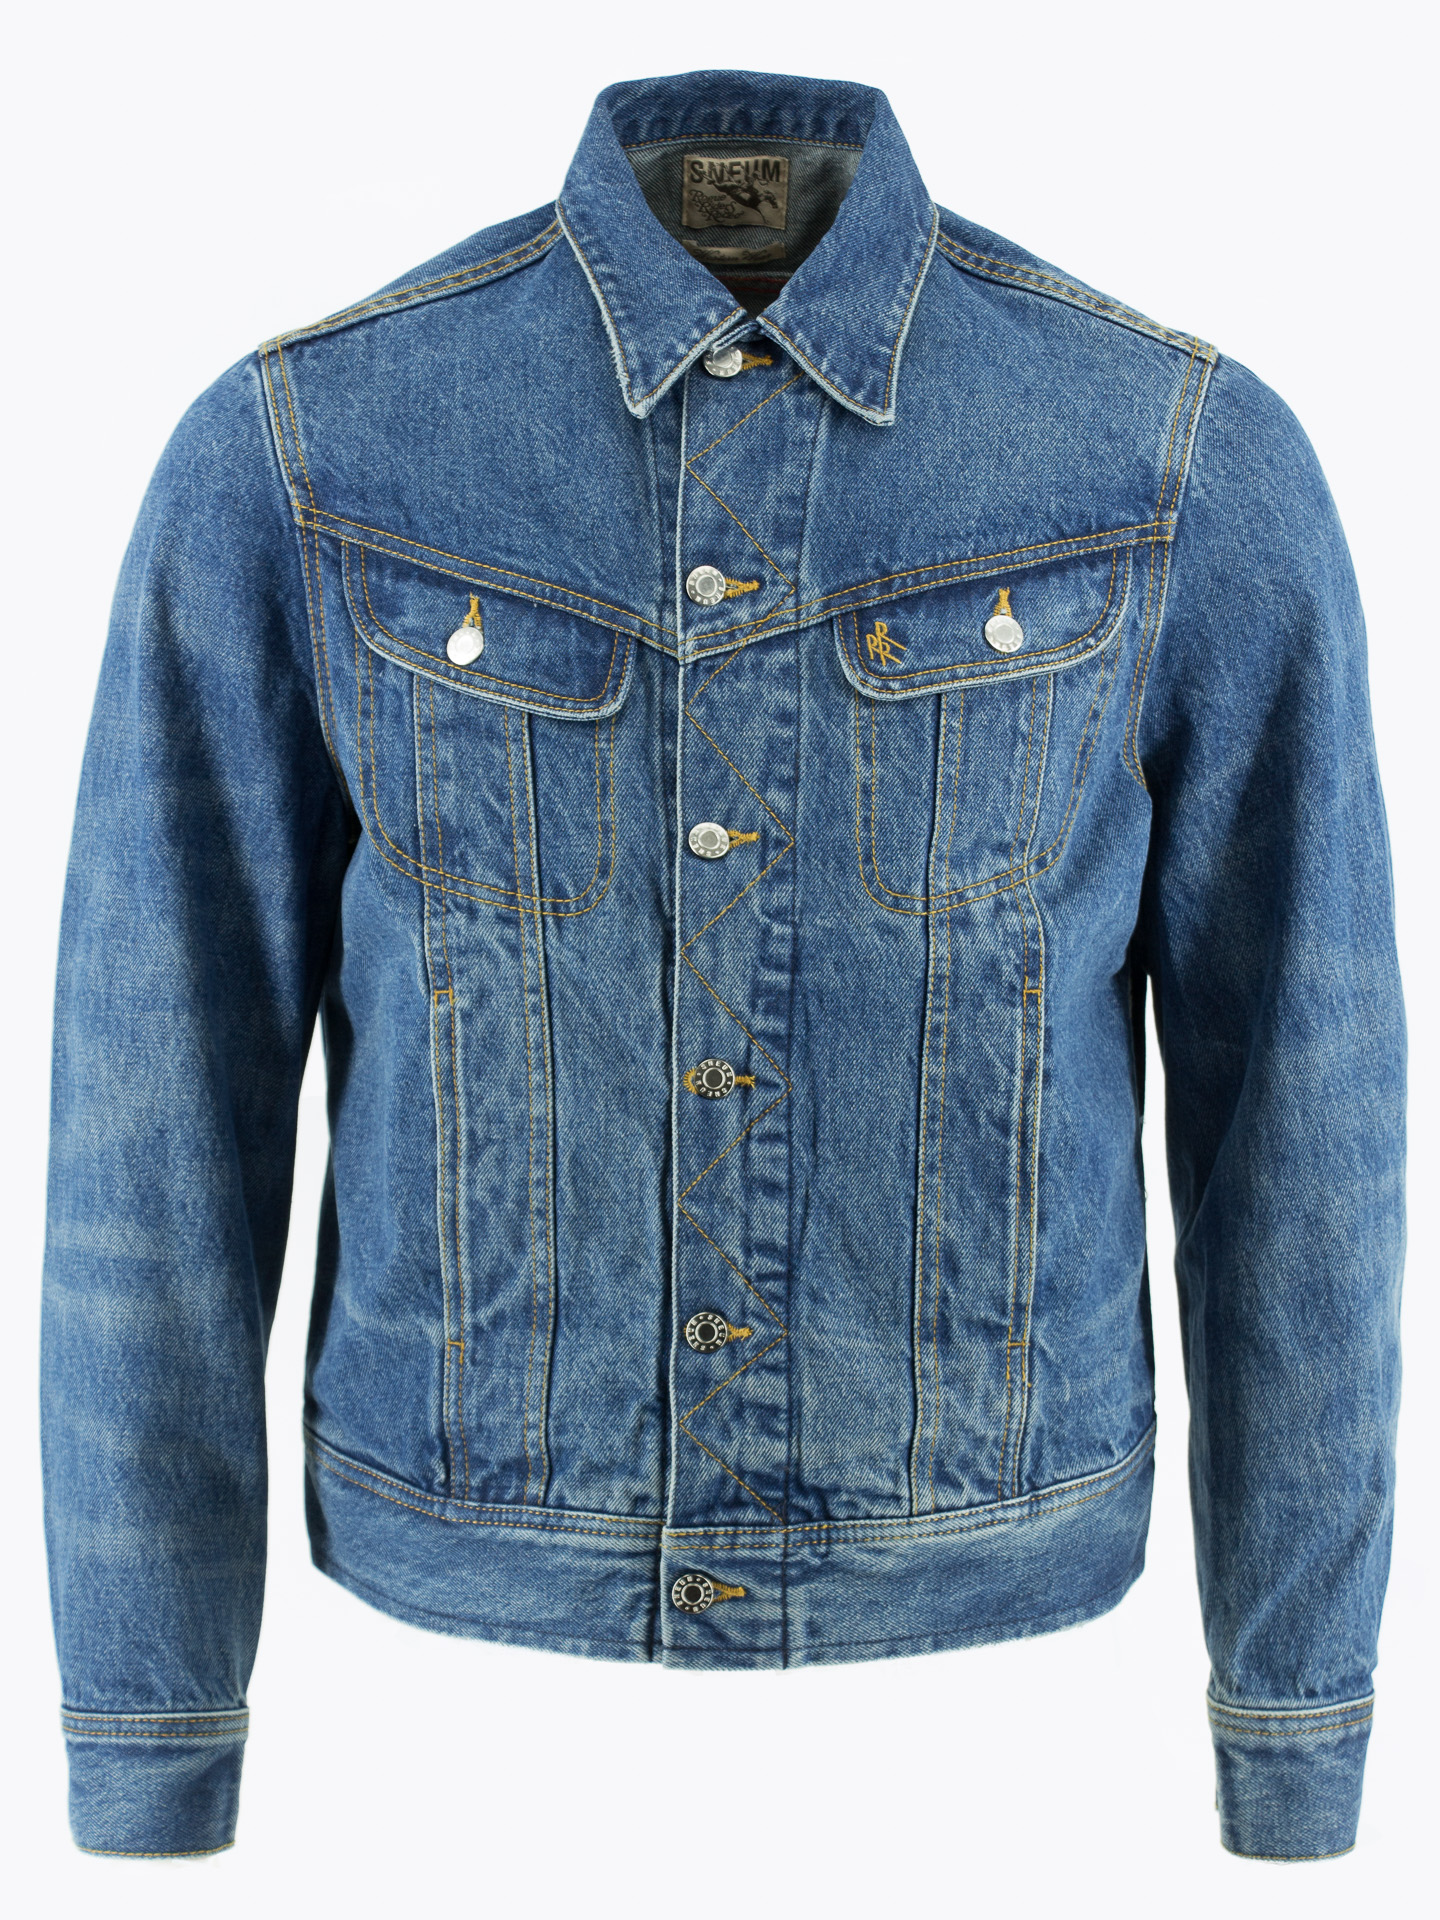 Rider denim jacket Cone denim Trucker jacket Western jacket